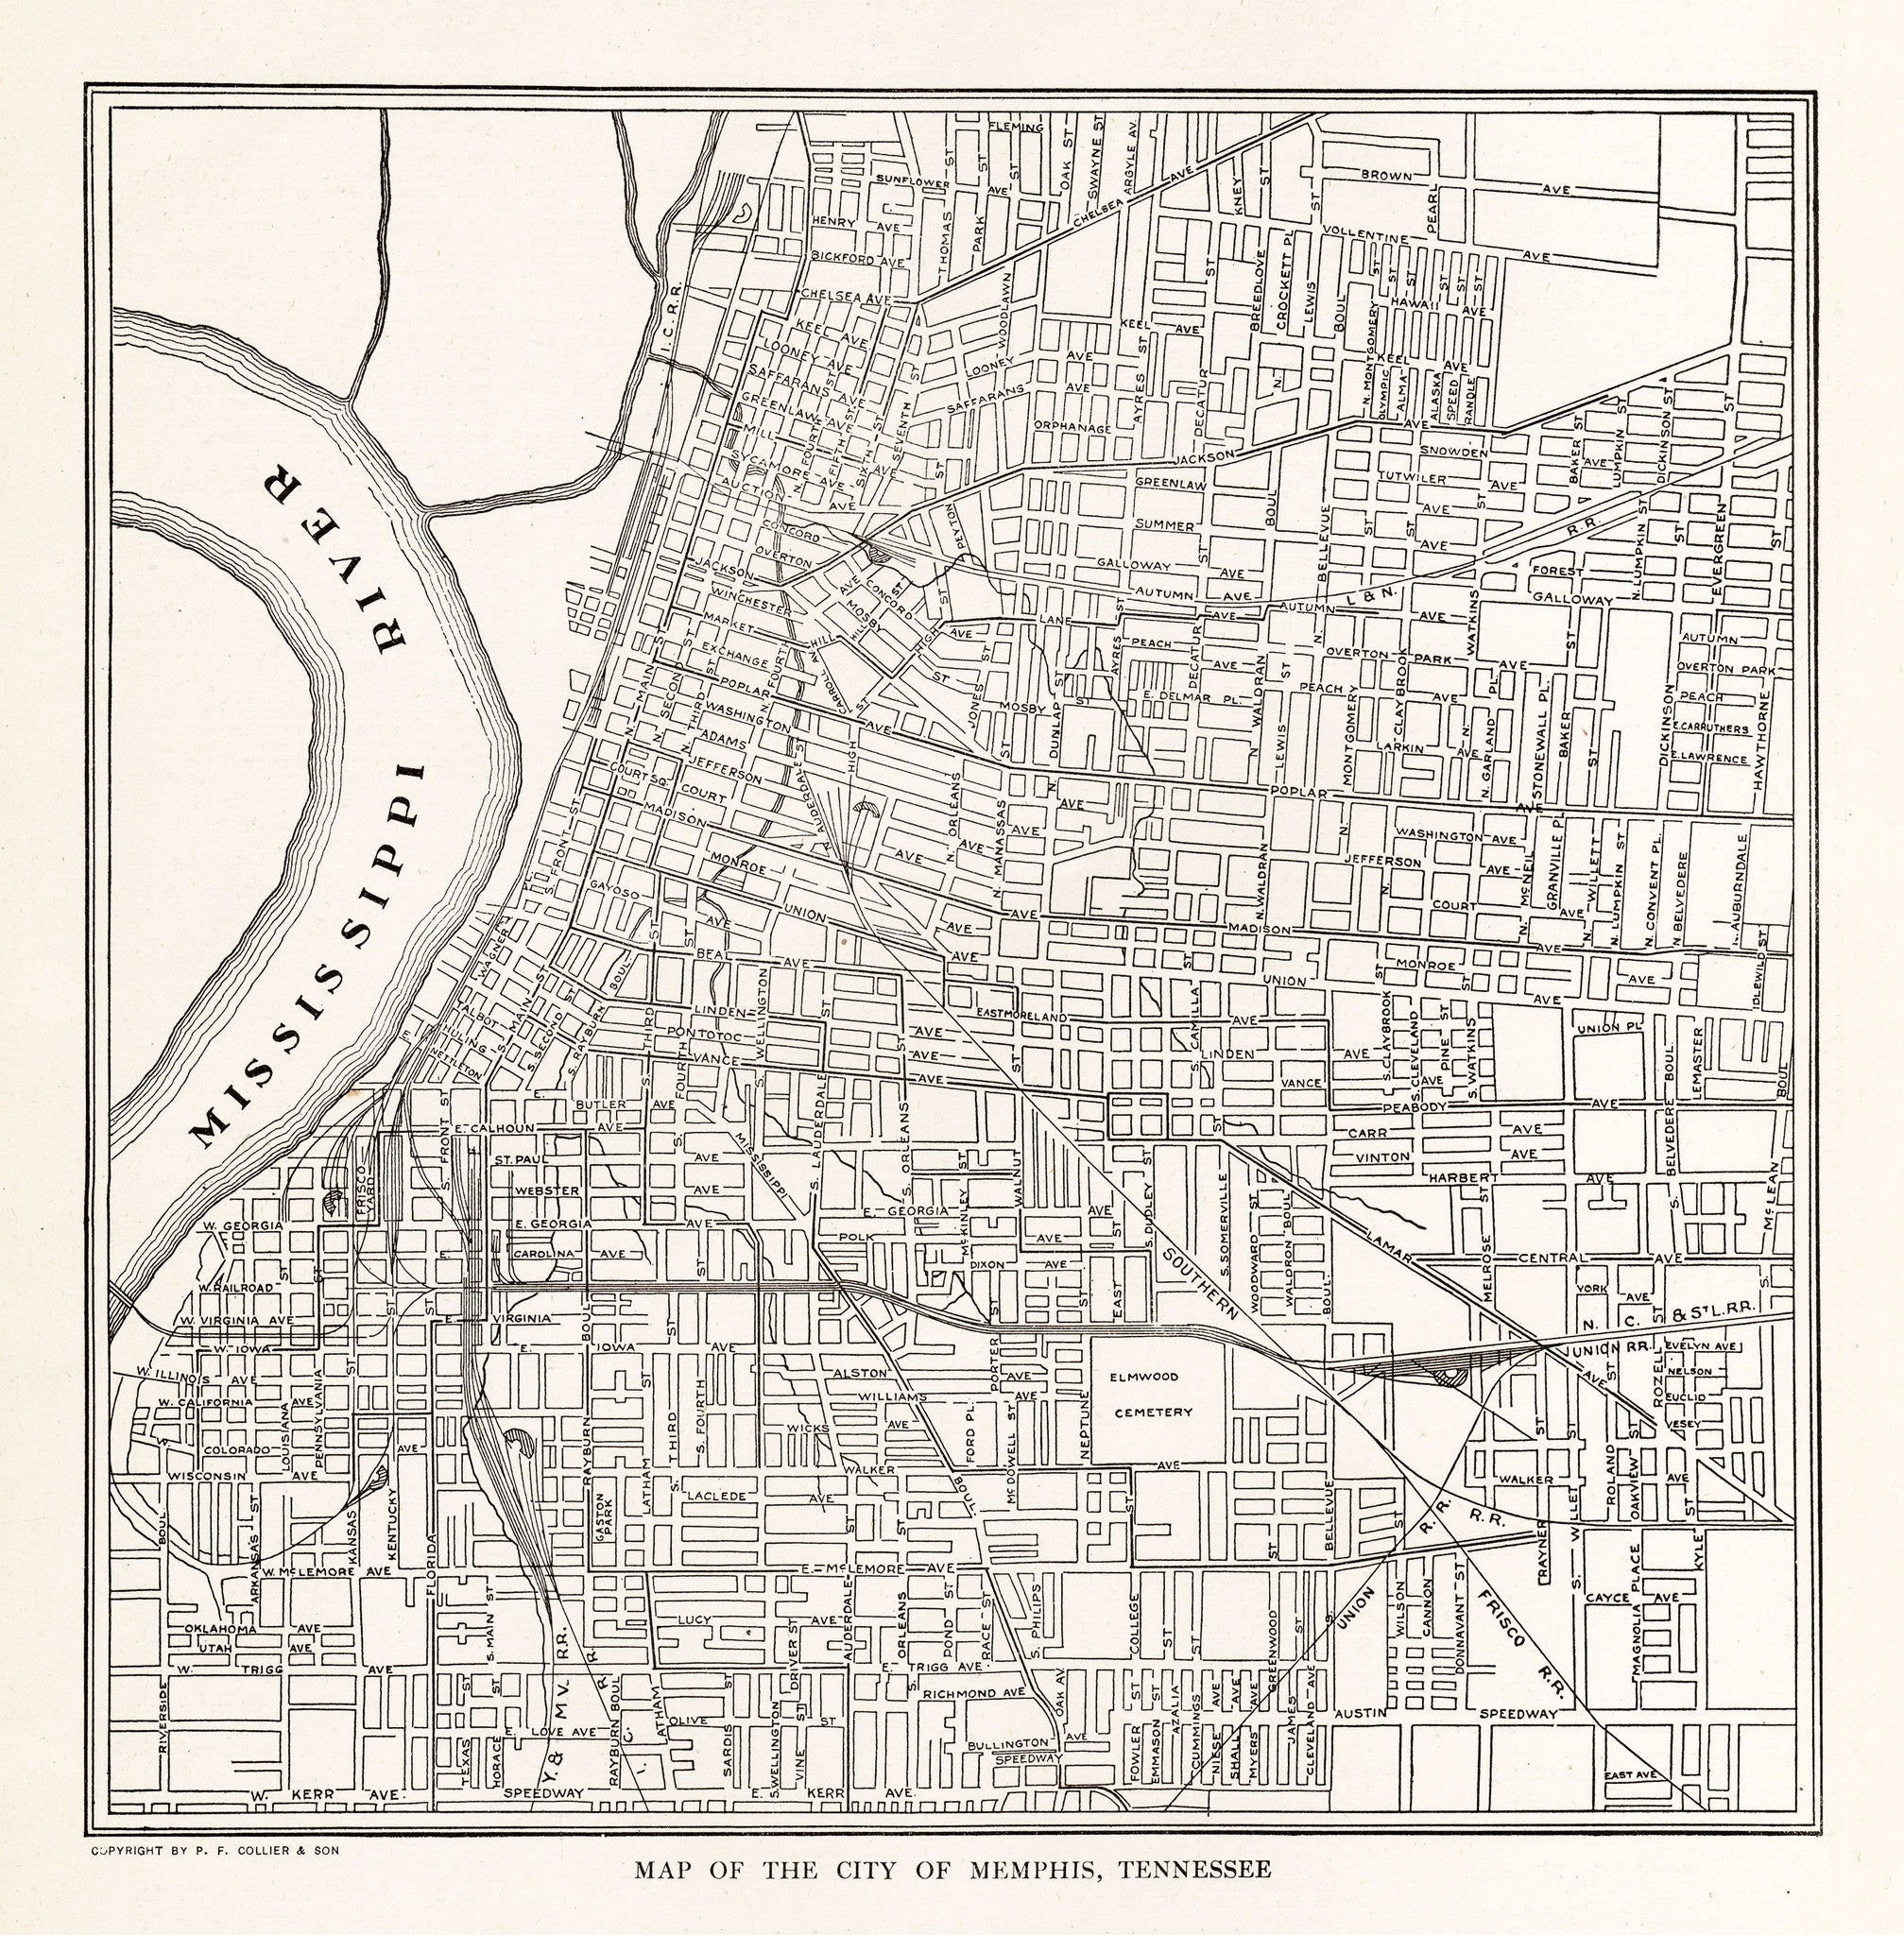 Map of The City of Memphis, Tennessee